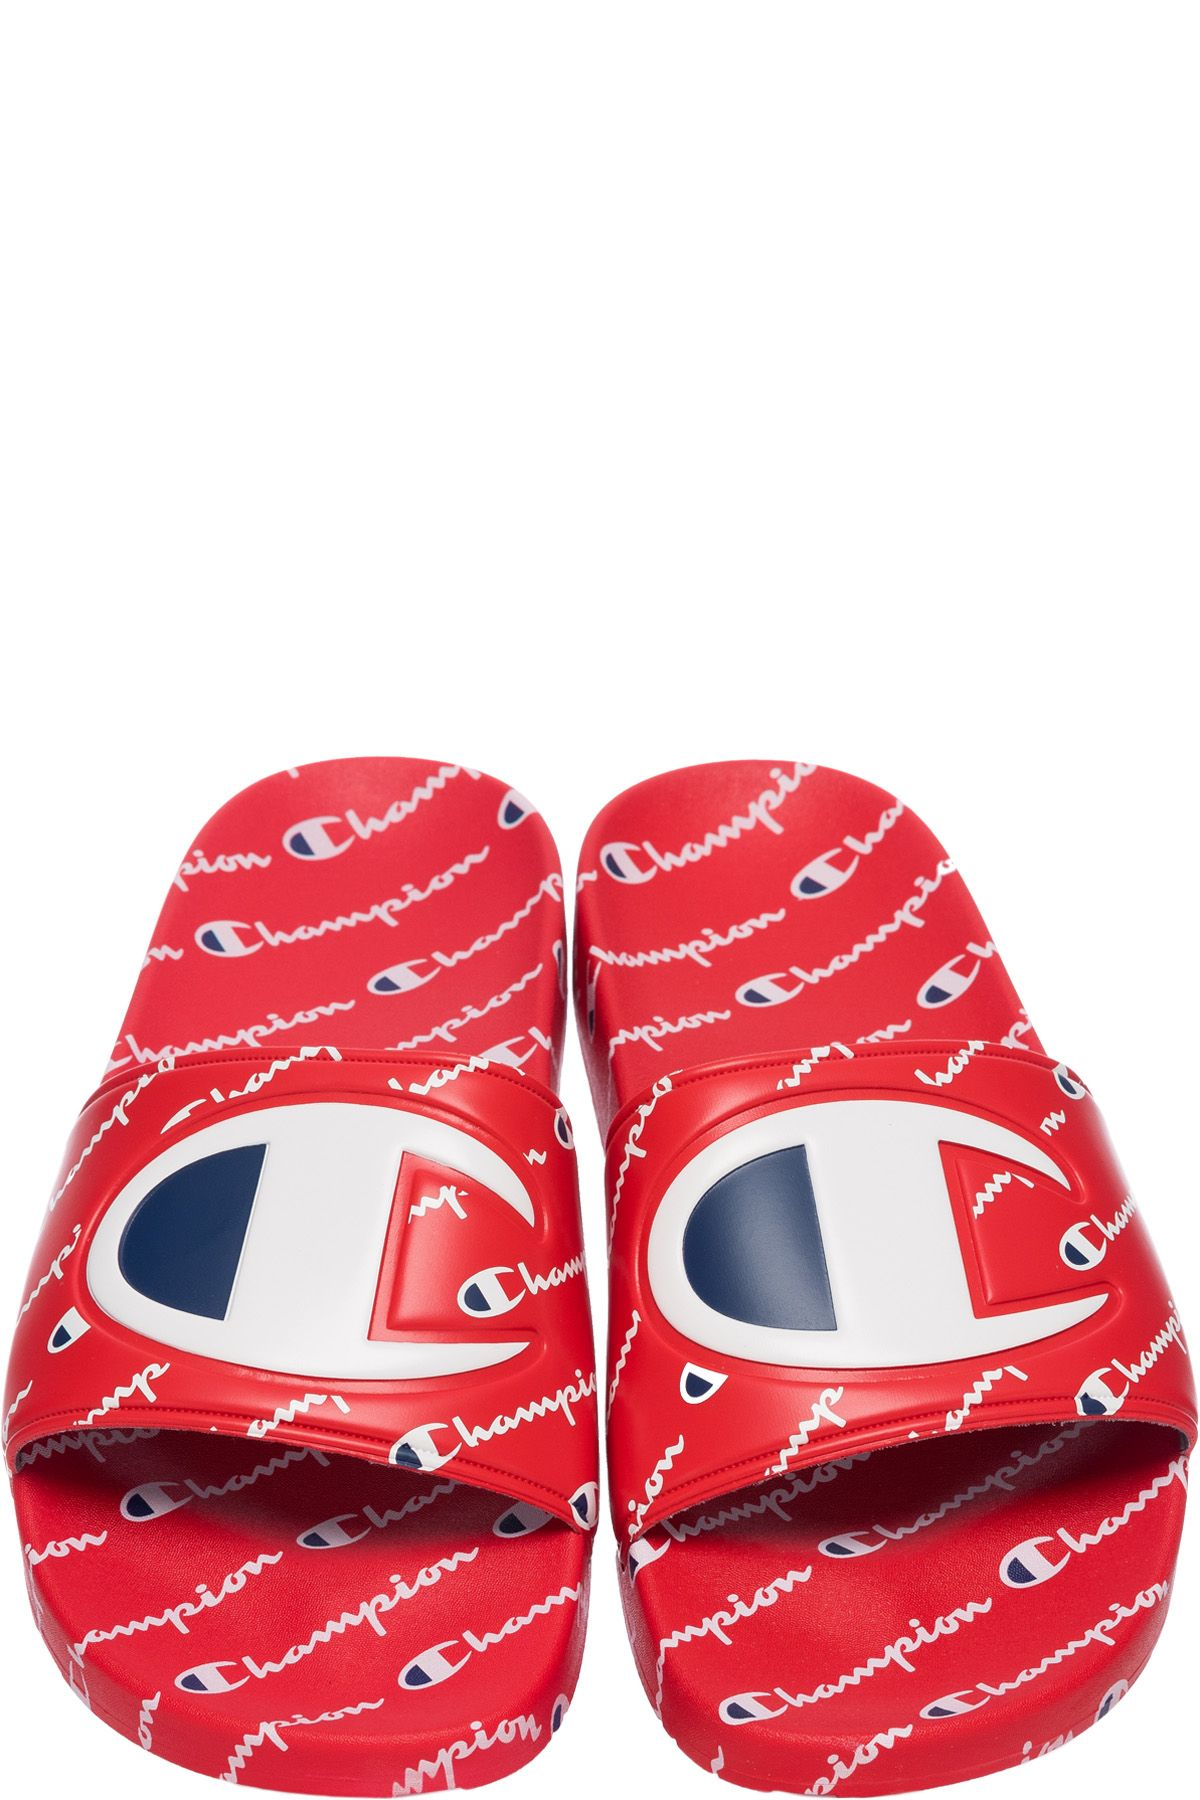 Champion - IPO Repeat Slide - Red